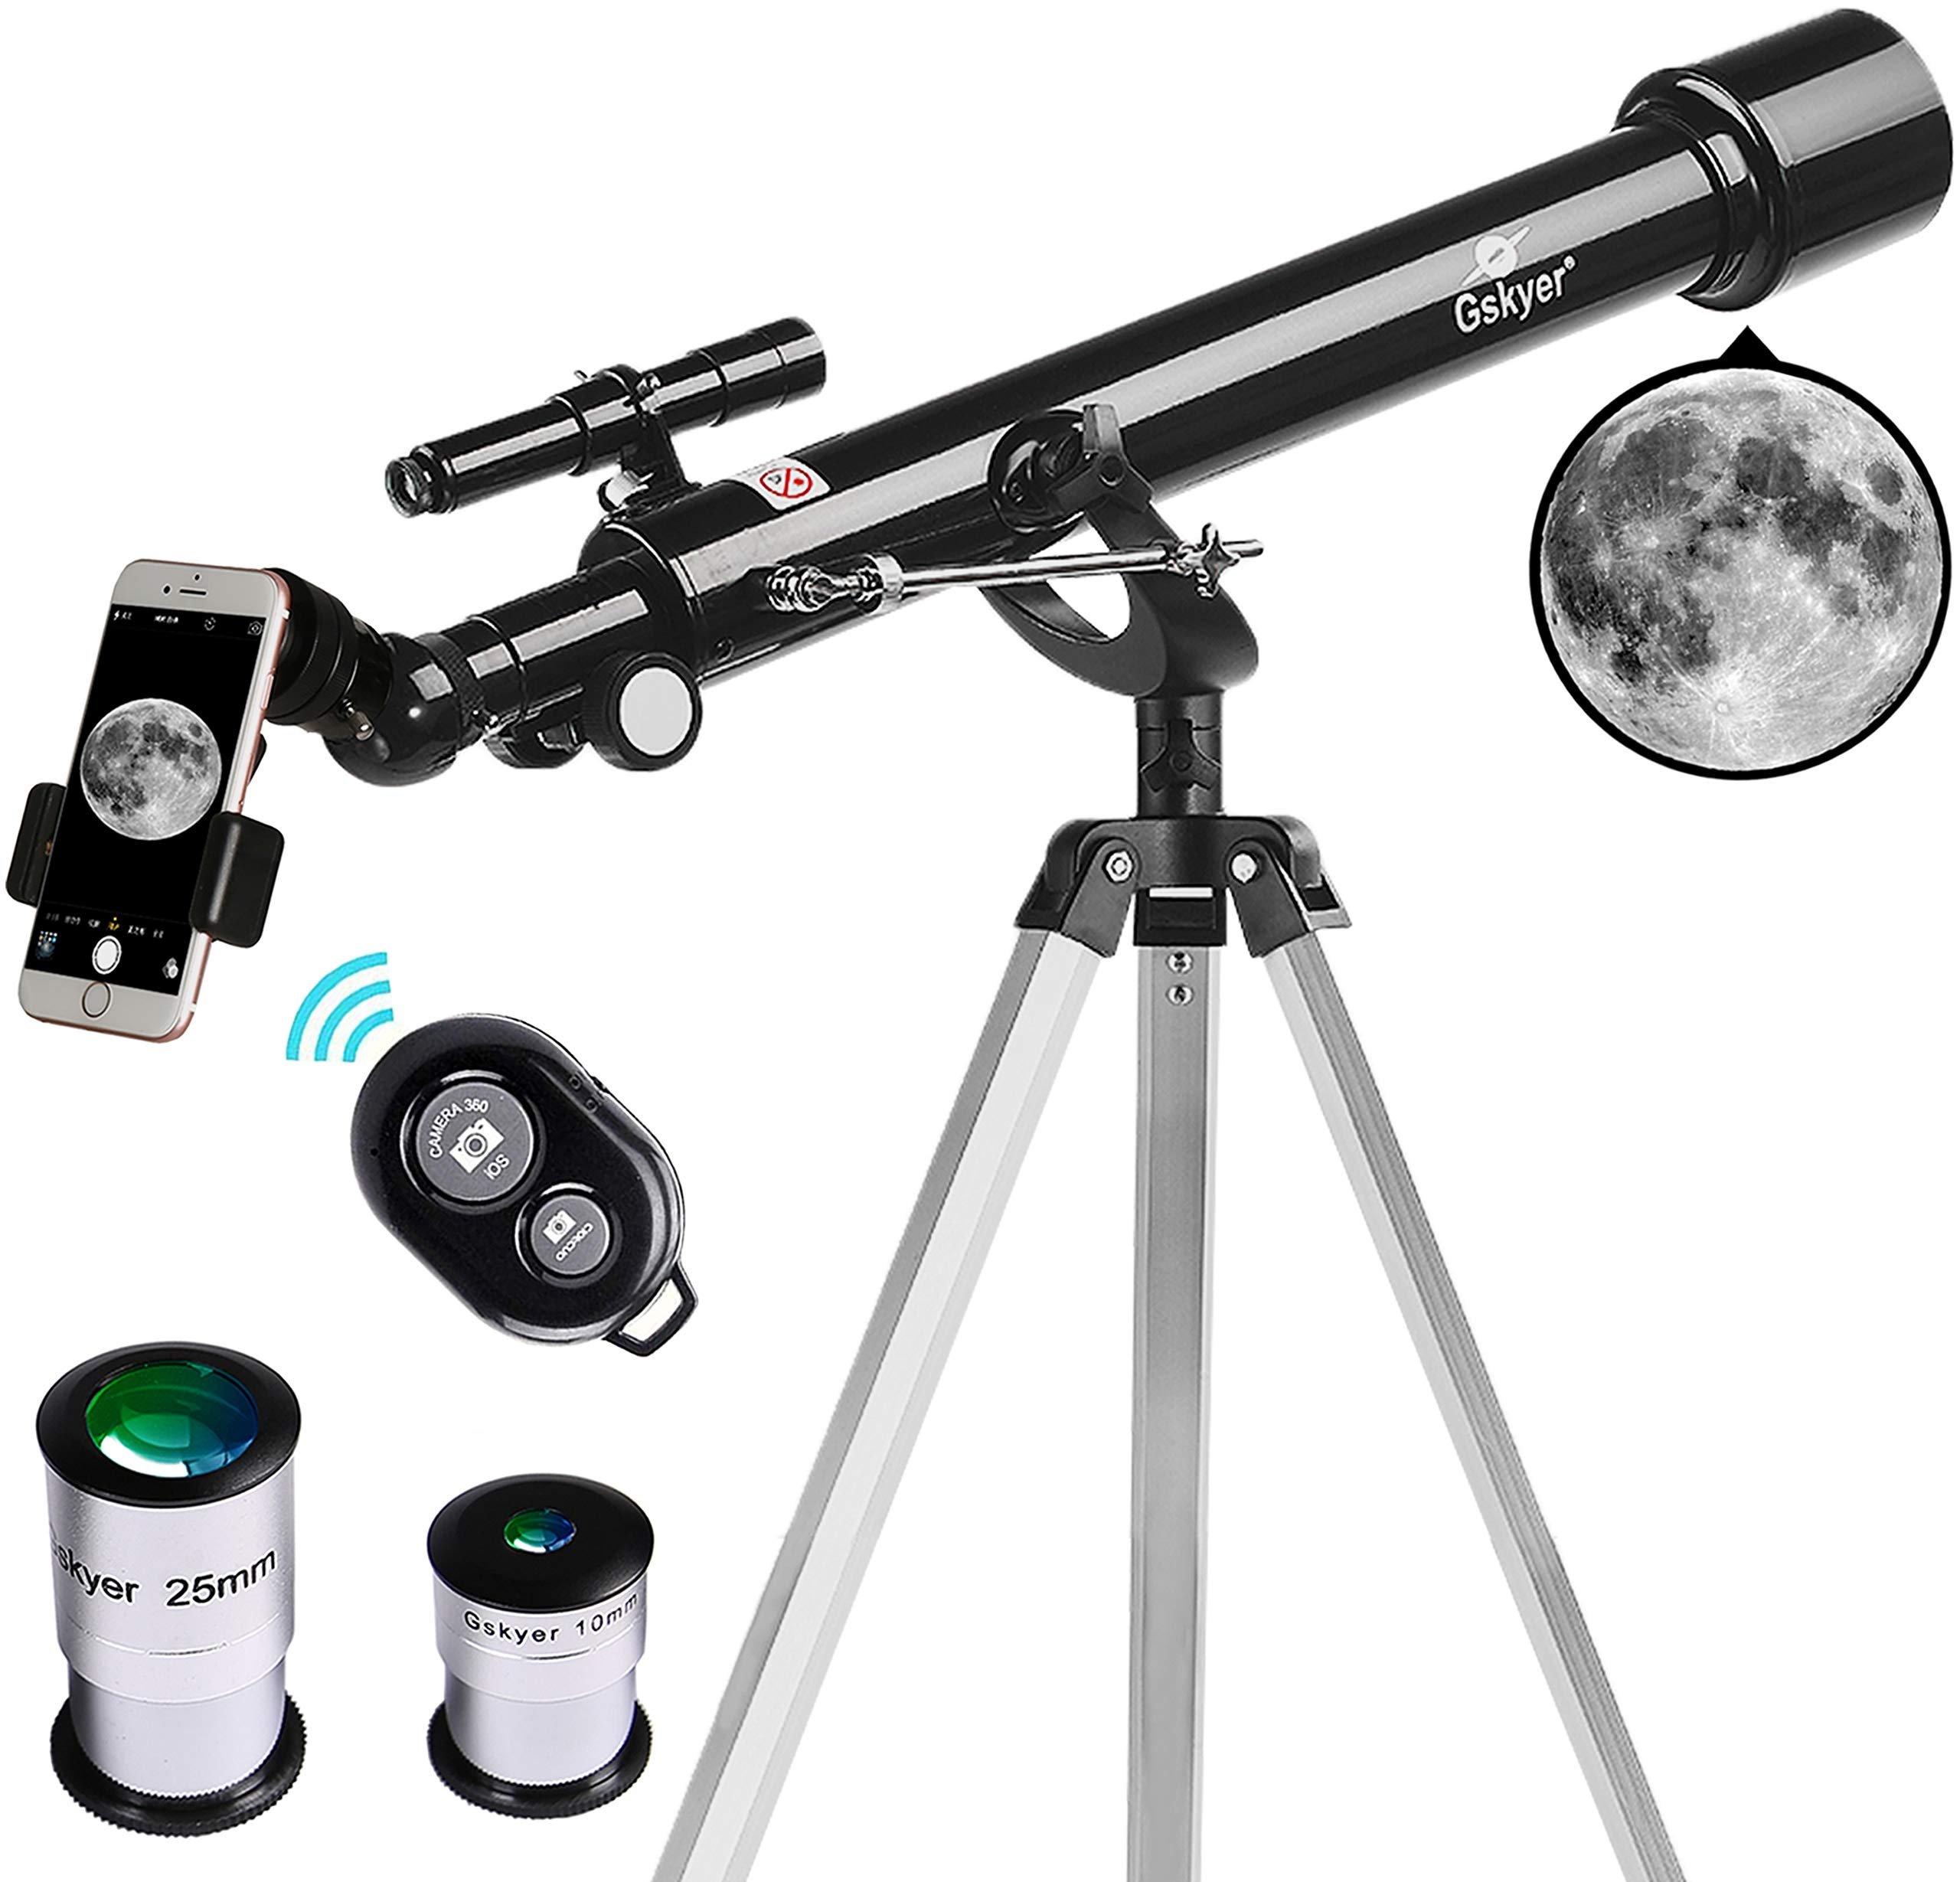 Gskyer Telescope, Instruments Infinity 60mm AZ Refractor Telescope, German Technology Travel Scope by Gskyer